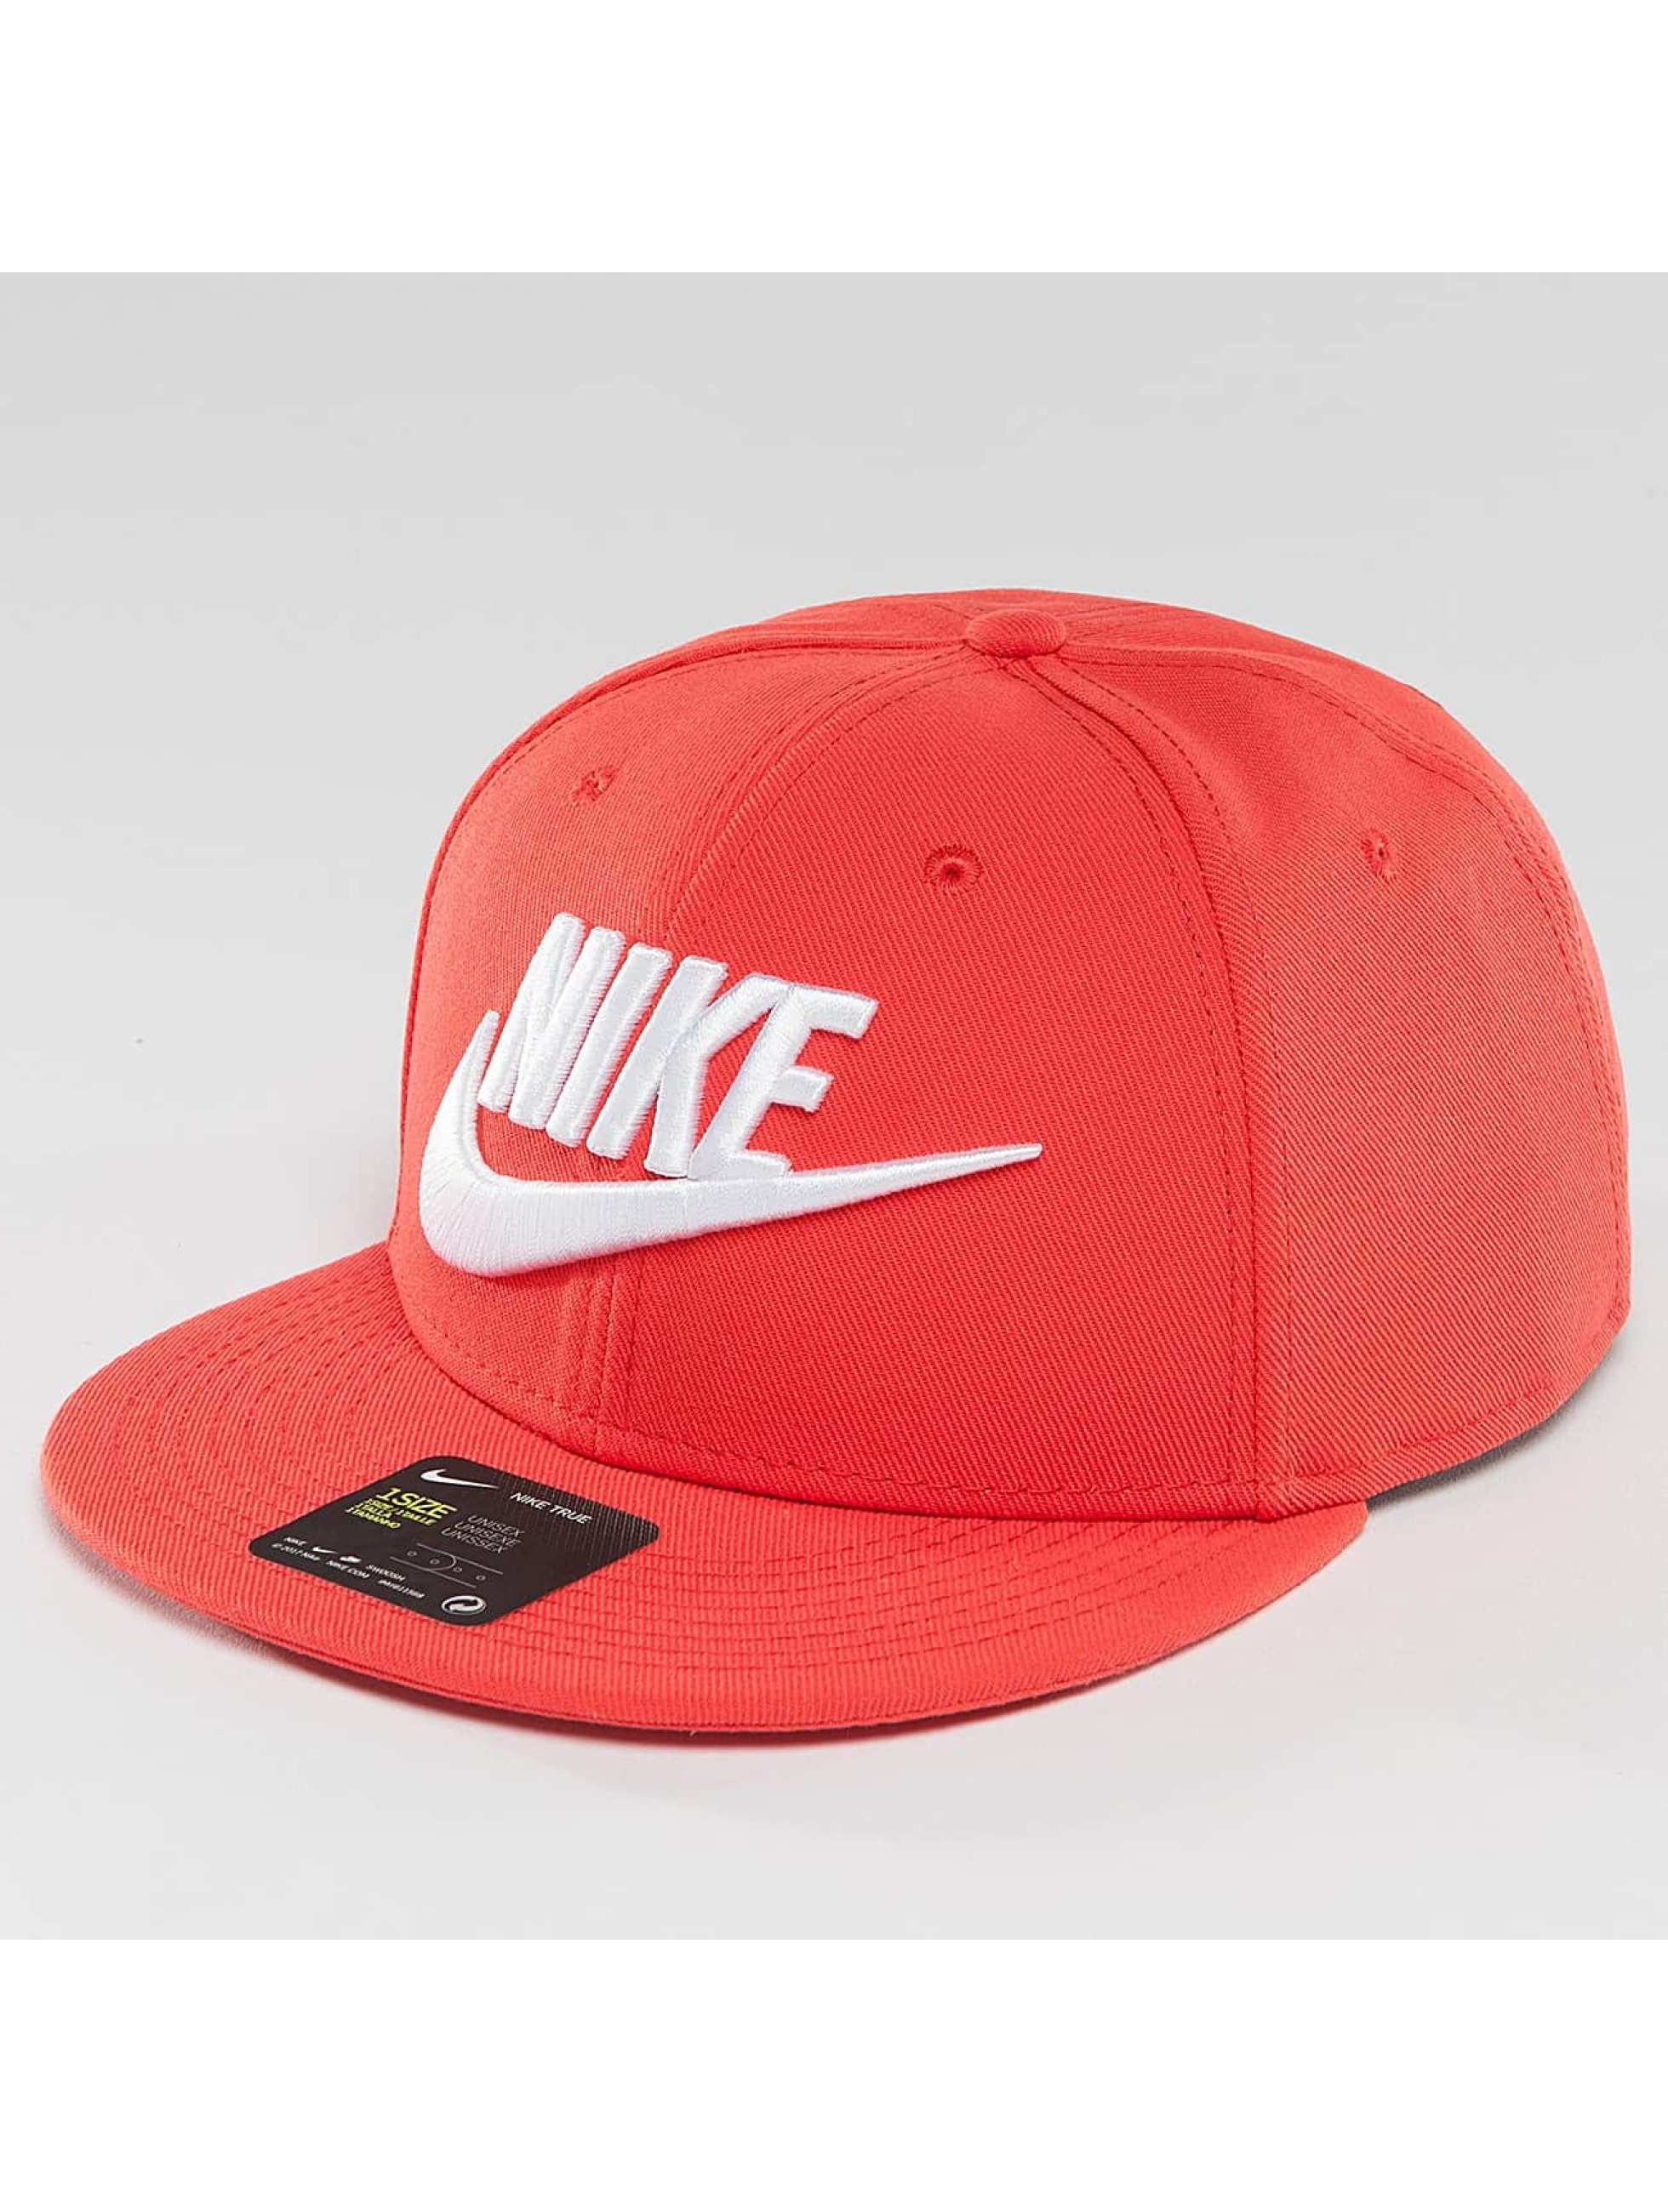 Nike Snapback Cap True red